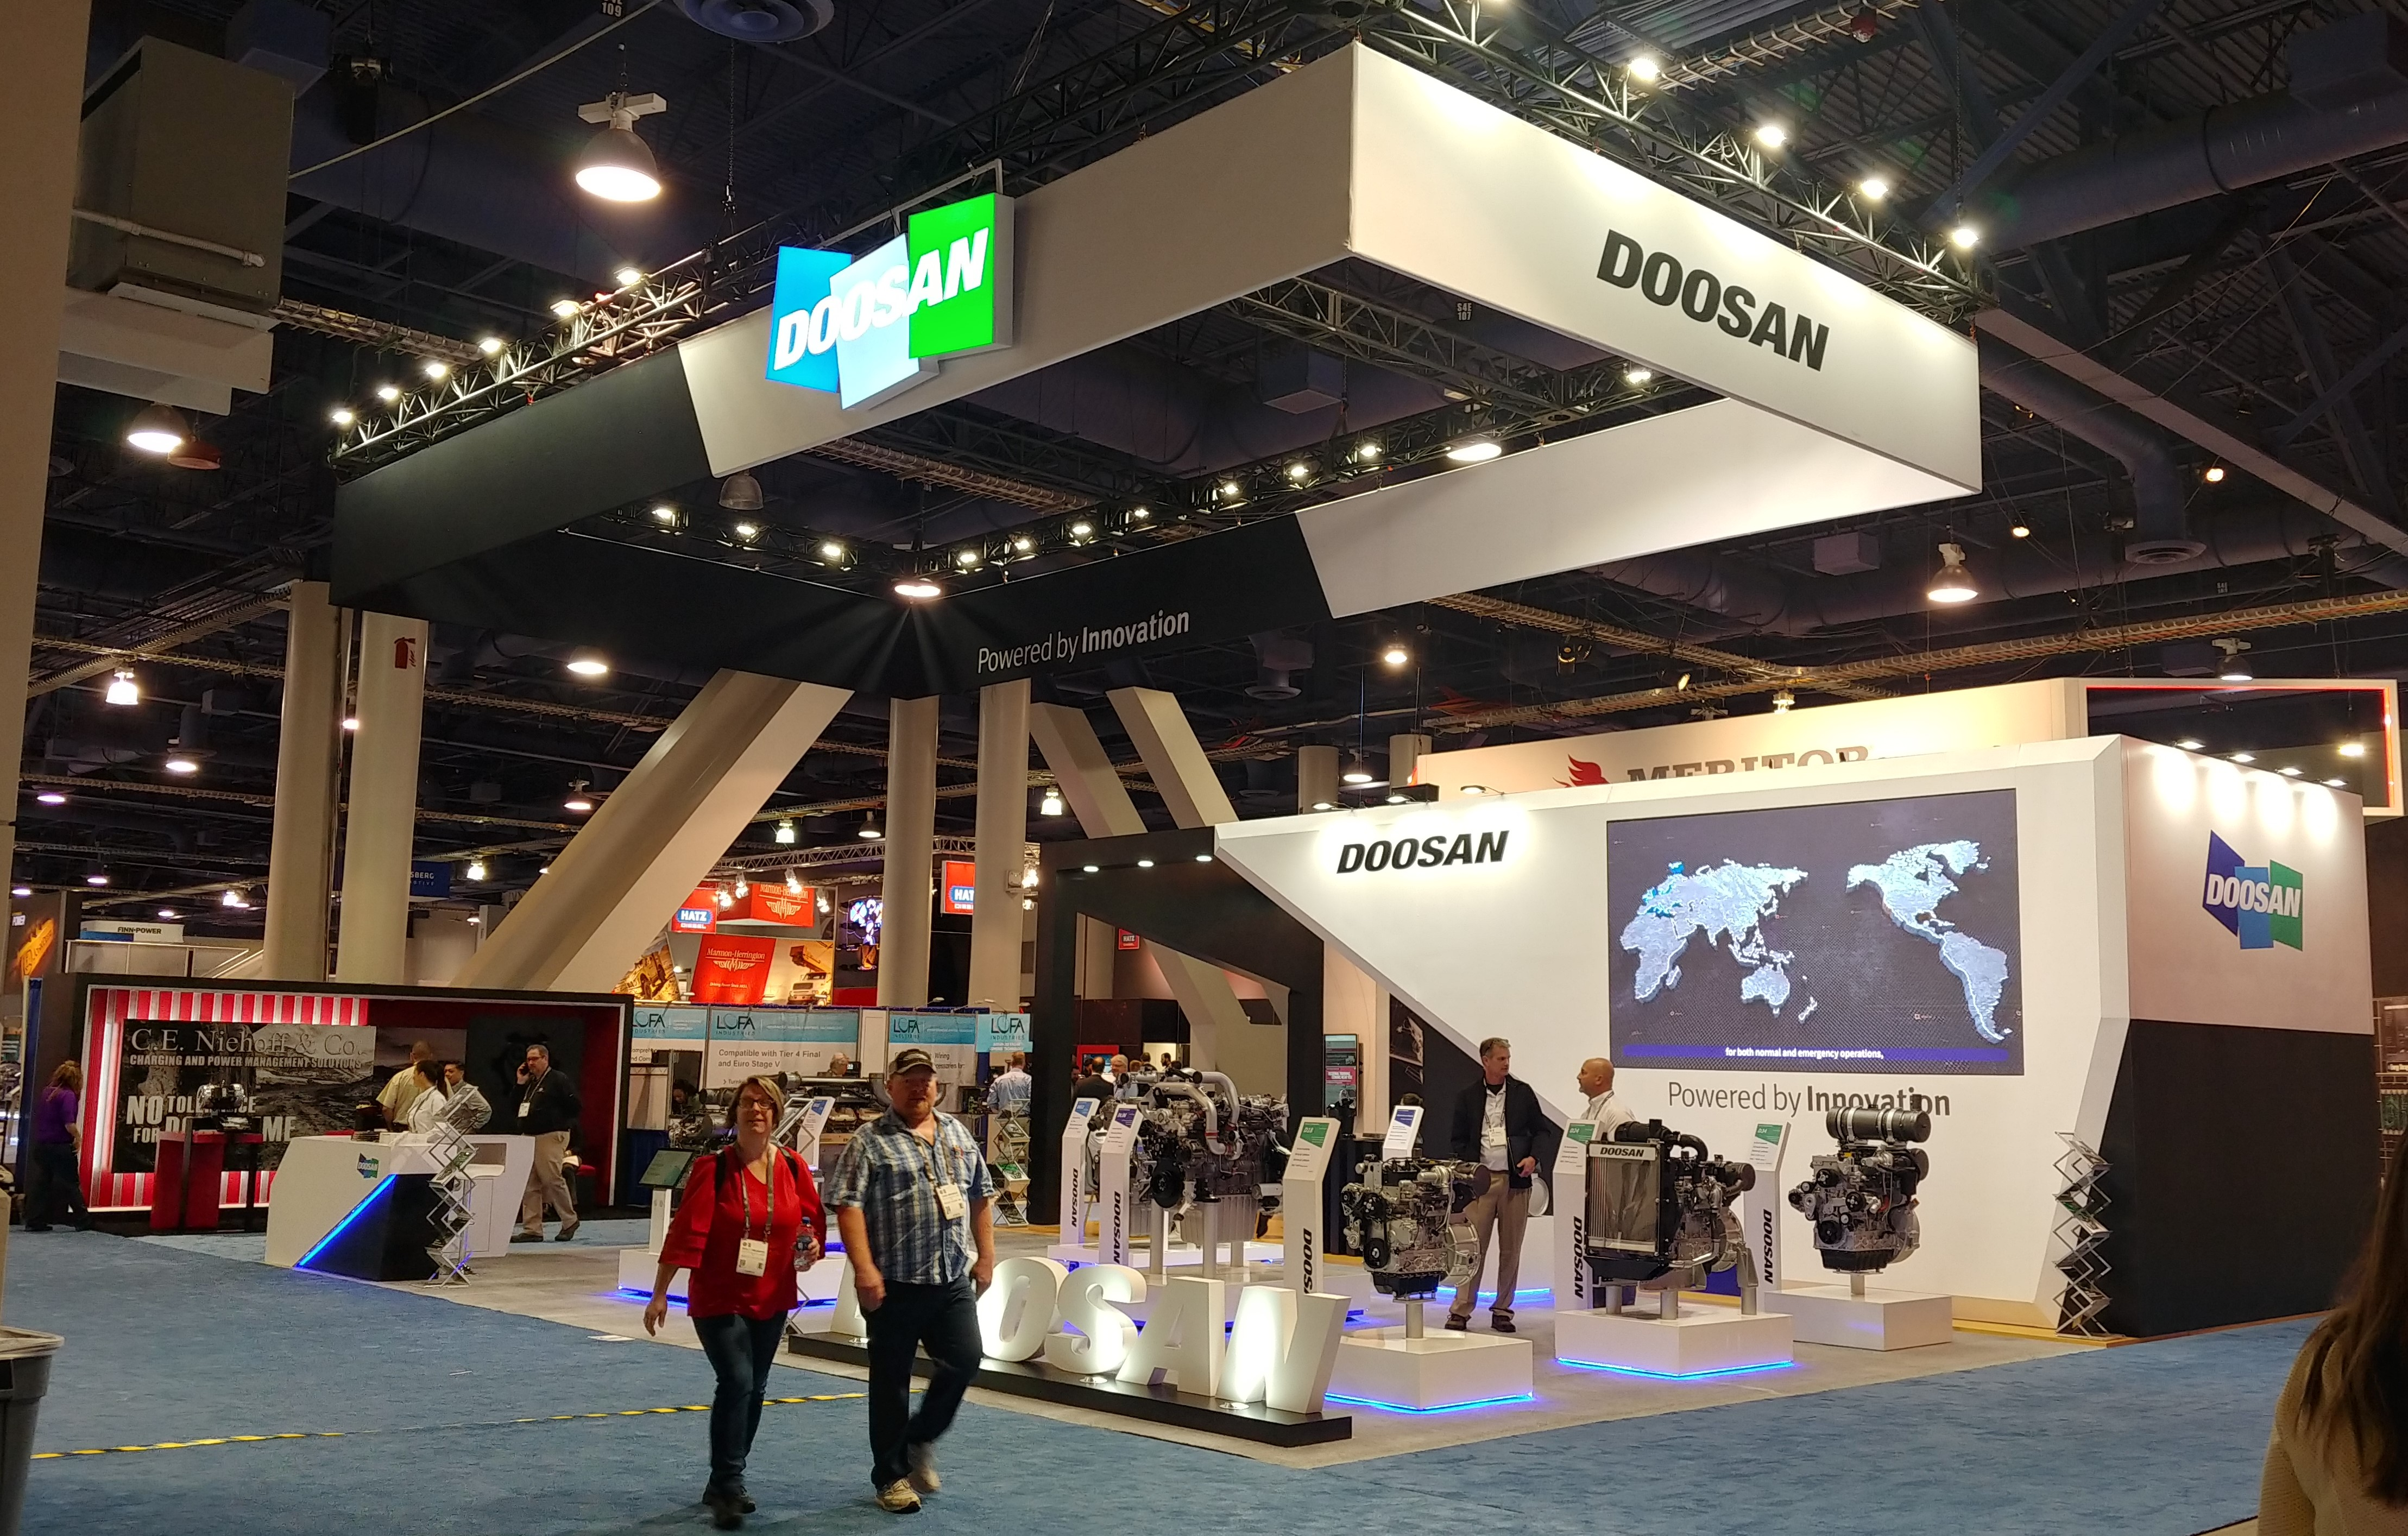 Doosan participates in the U.S. construction trade show CONEXPO 2020, introducing smart machines and solutions